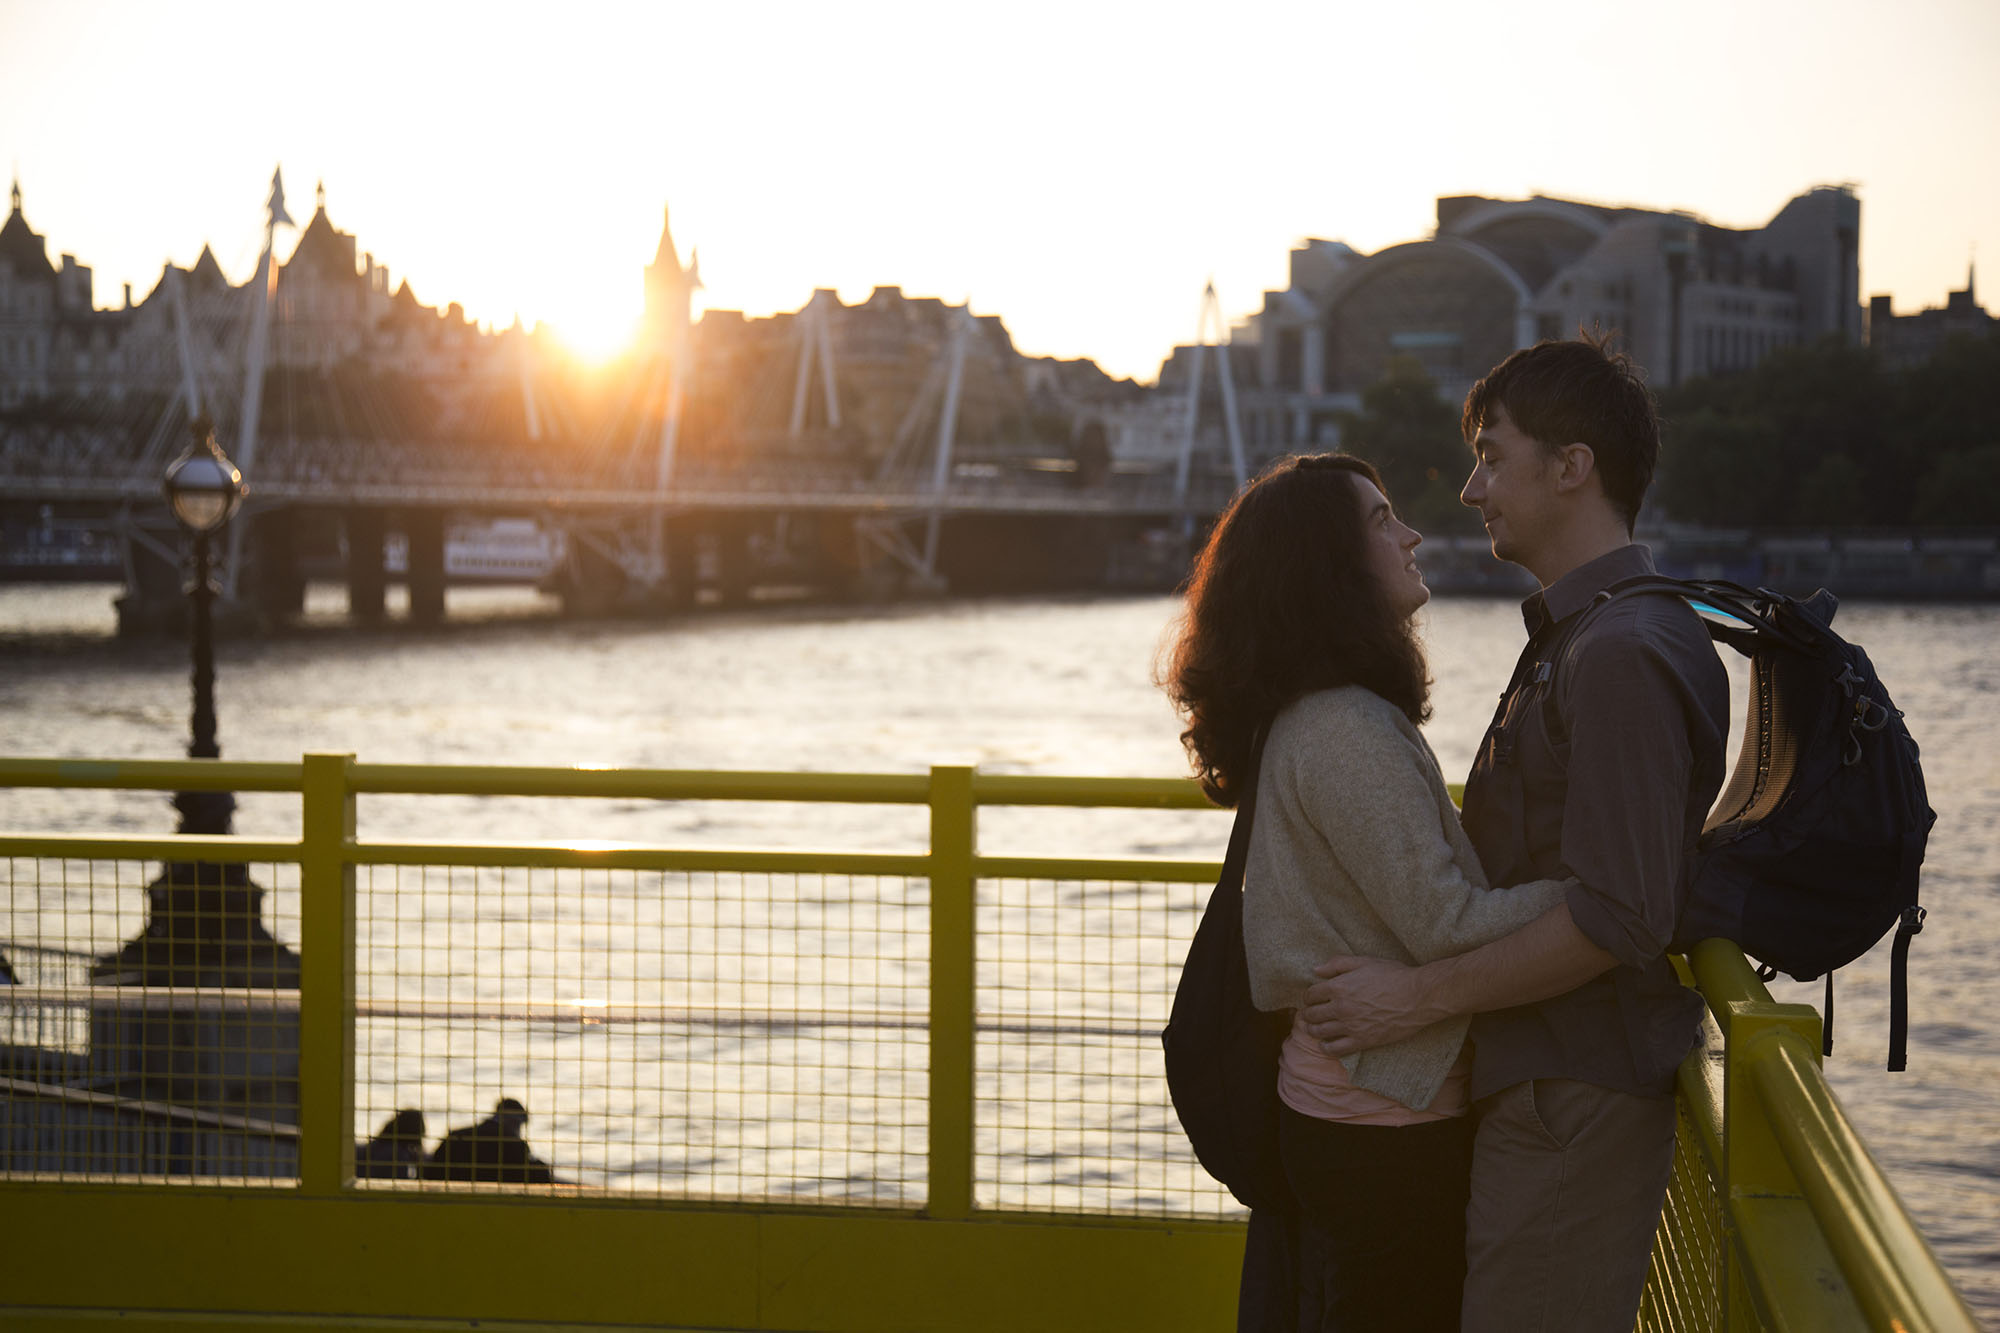 Lovers embrace at sunset on the yellow gantry beside the Royal Festival Hall terrace.